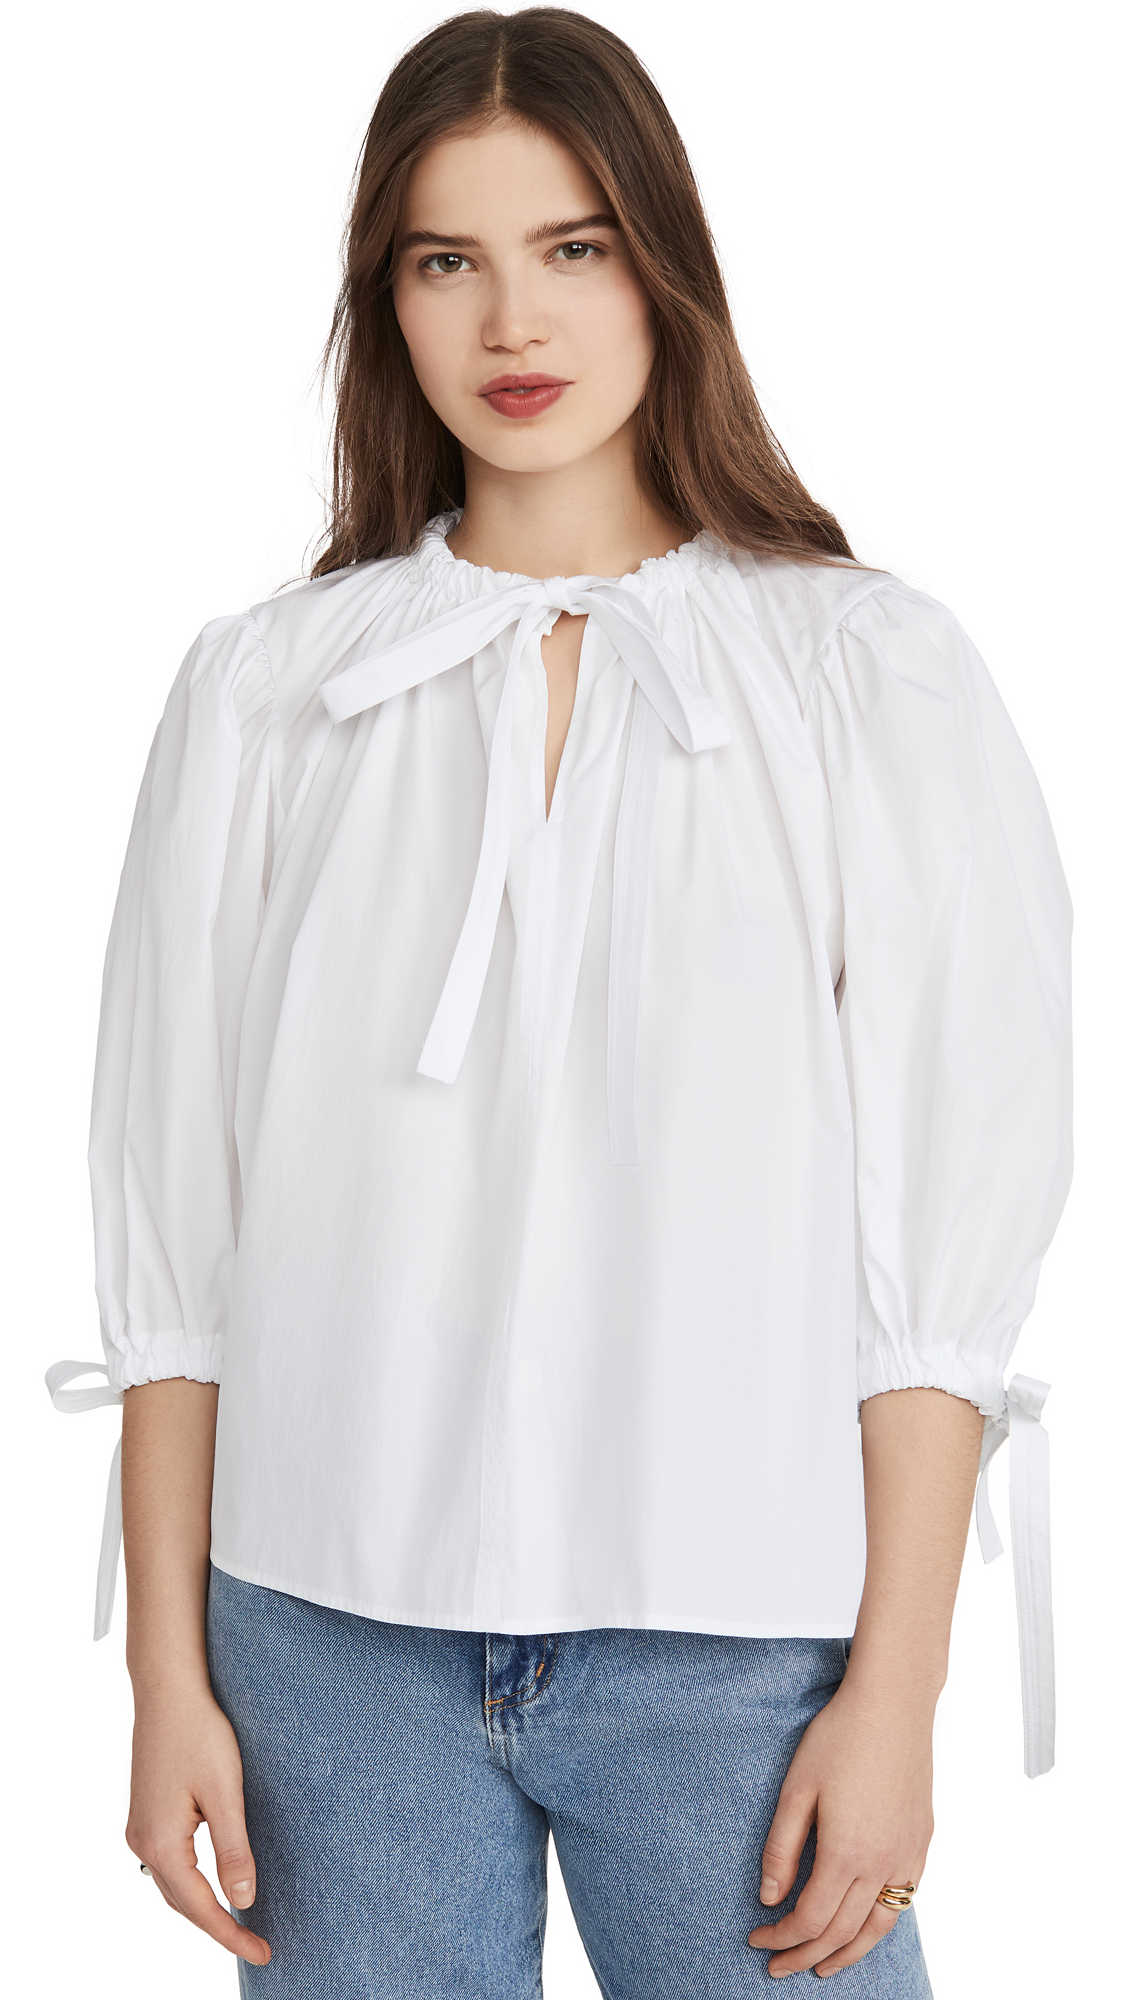 Mansur Gavriel Romantic Shirt - 60% Off Sale